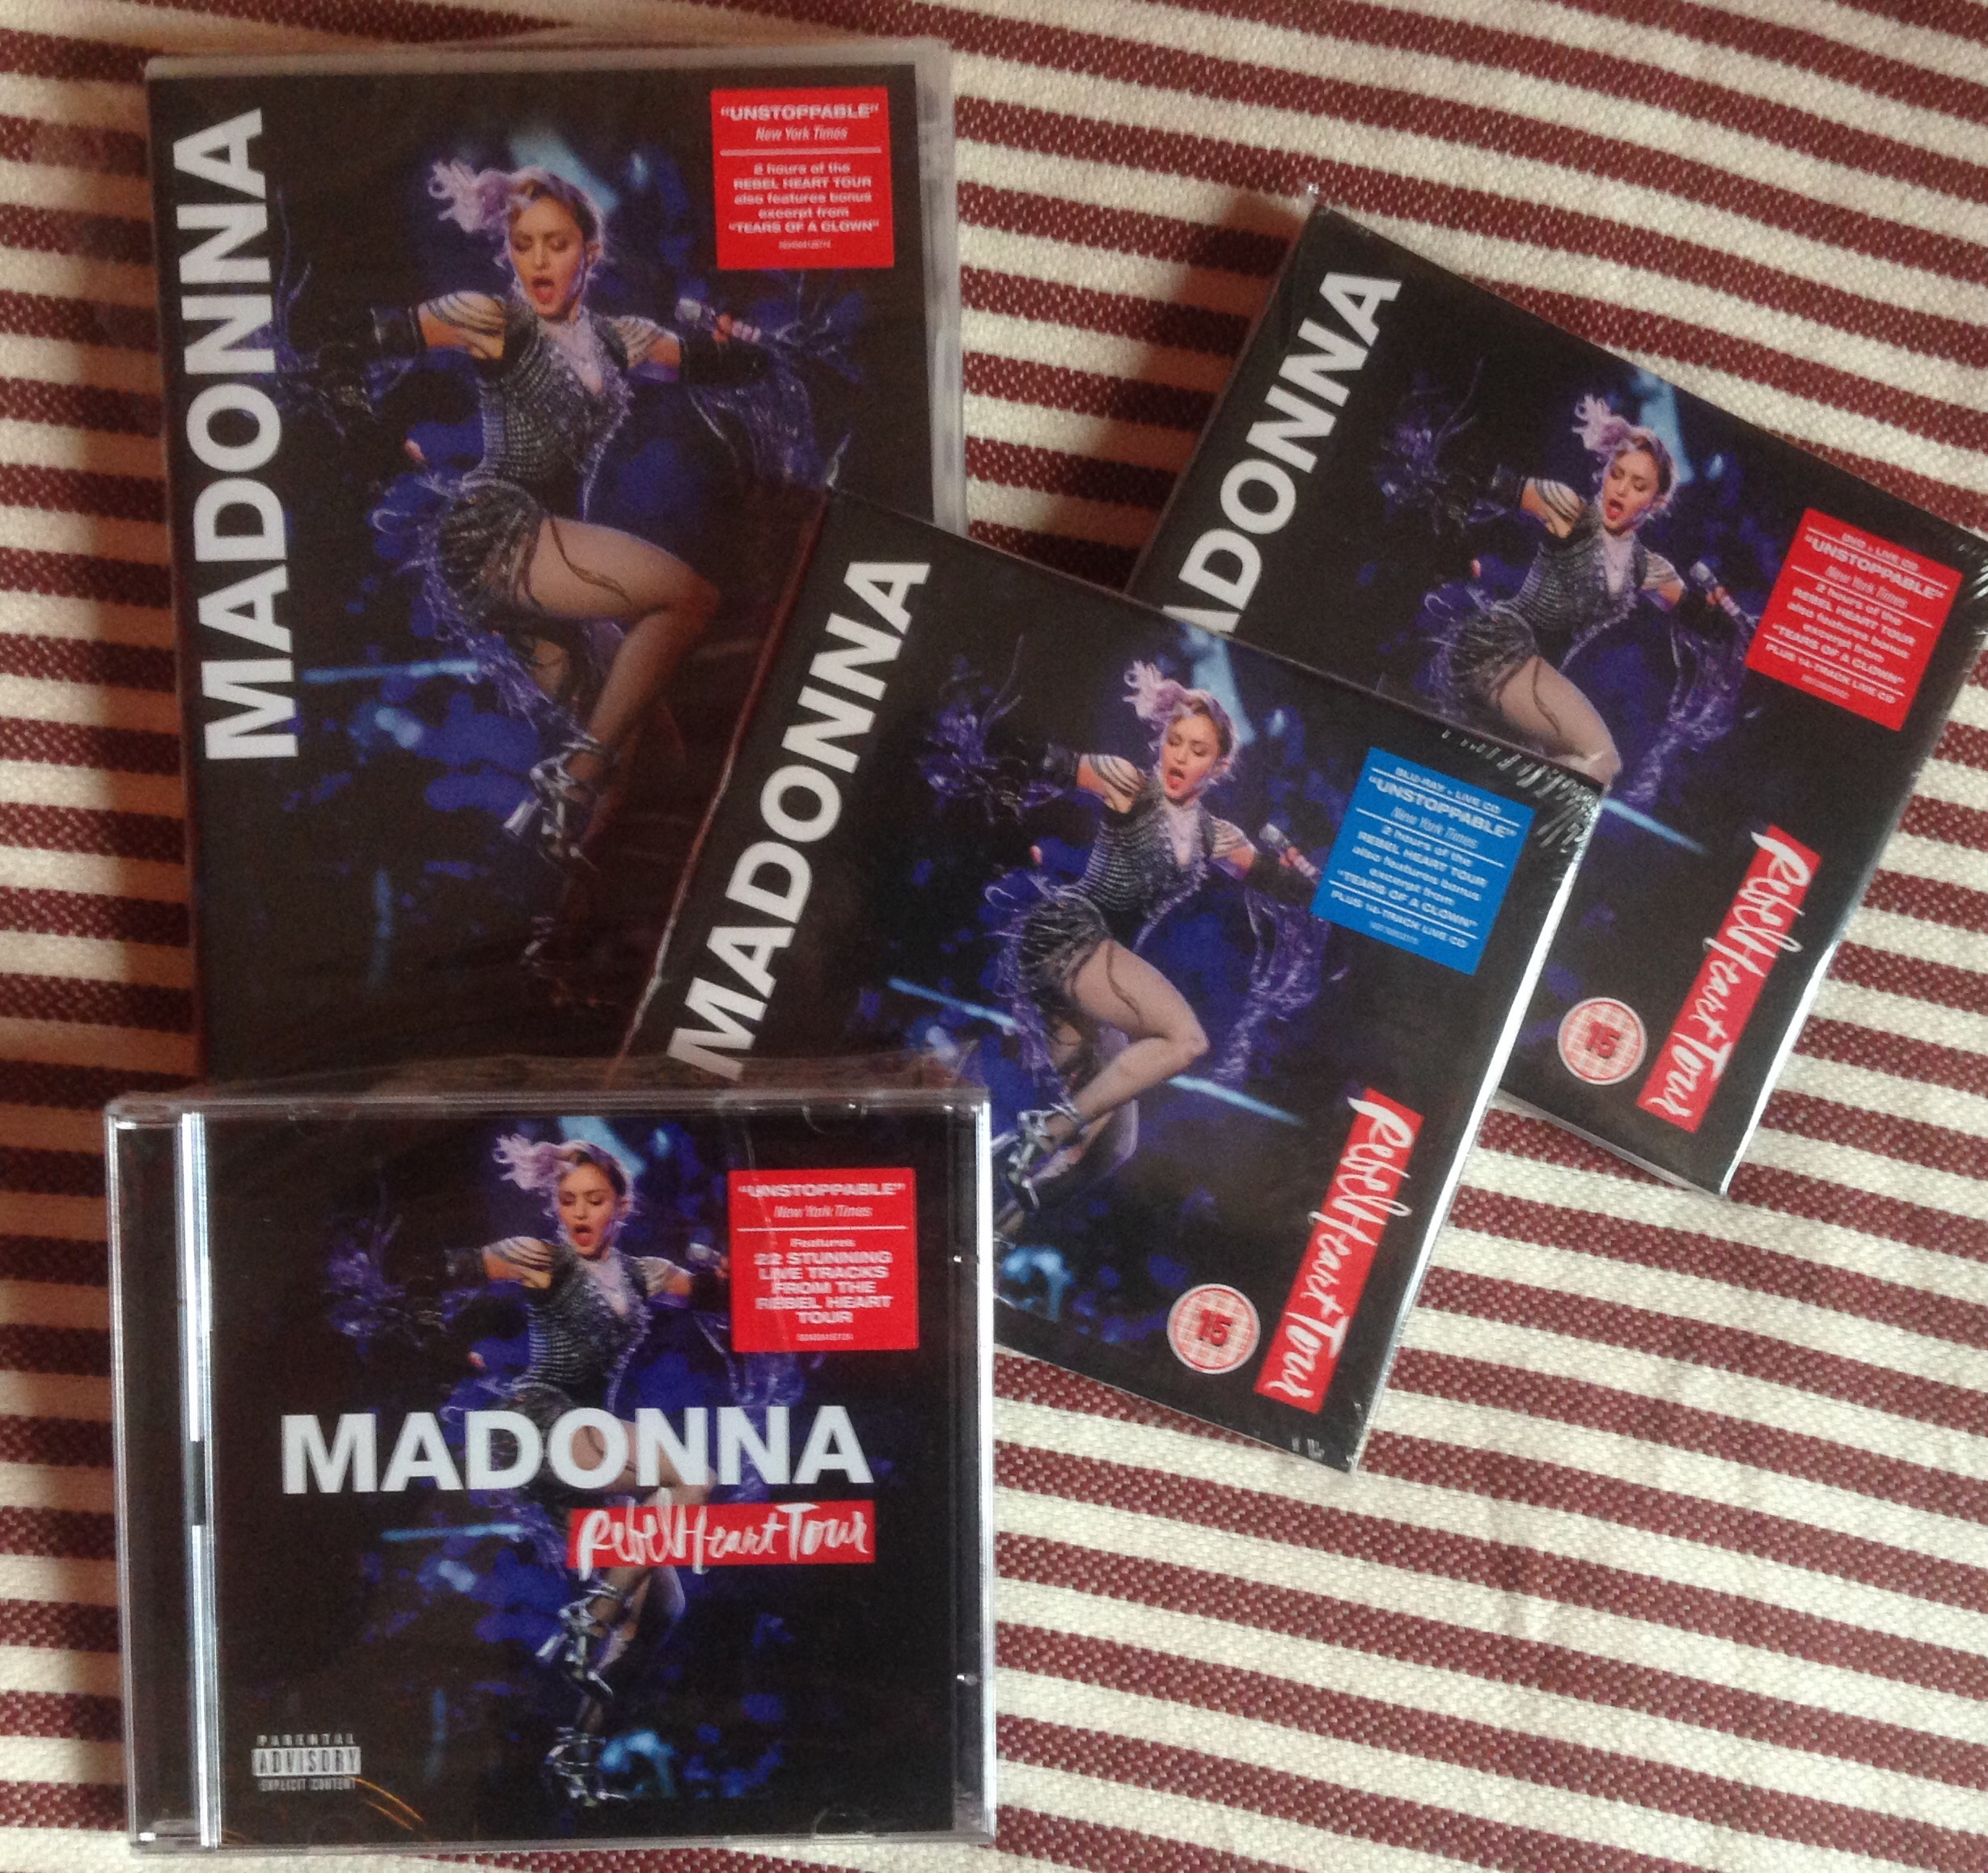 Rebel Heart Tour Home Video